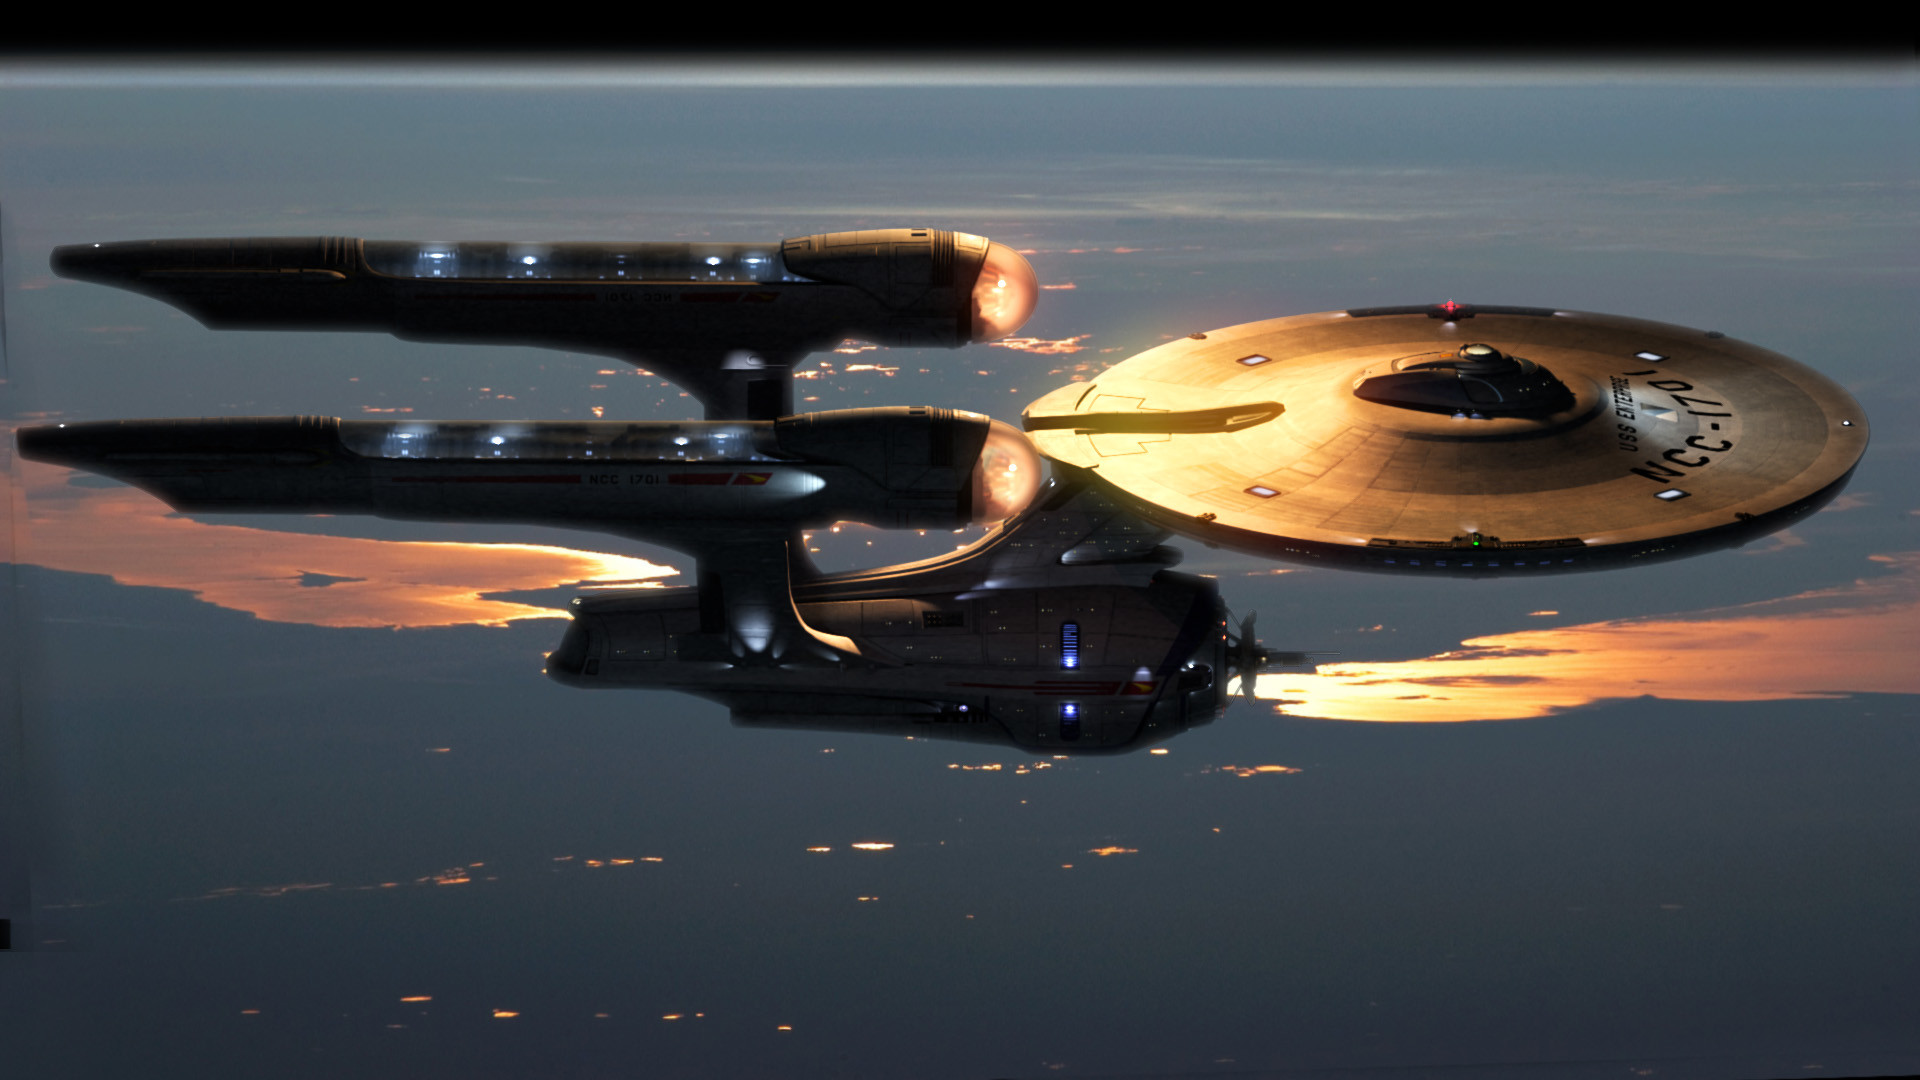 1920x1080 Star Trek Enterprise HD wallpaper